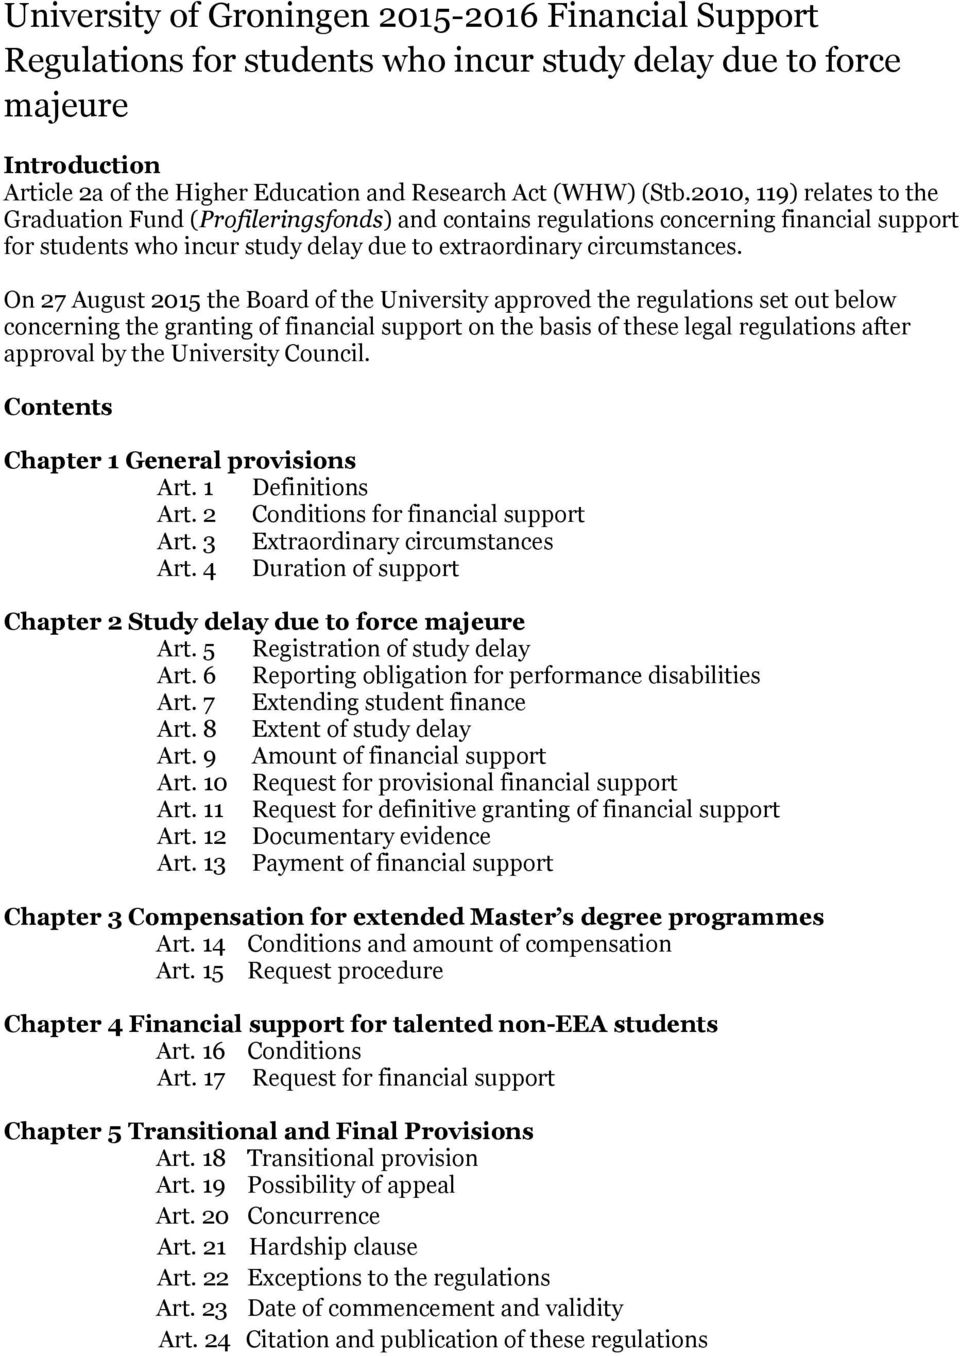 On 27 August 2015 the Board of the University approved the regulations set out below concerning the granting of financial support on the basis of these legal regulations after approval by the